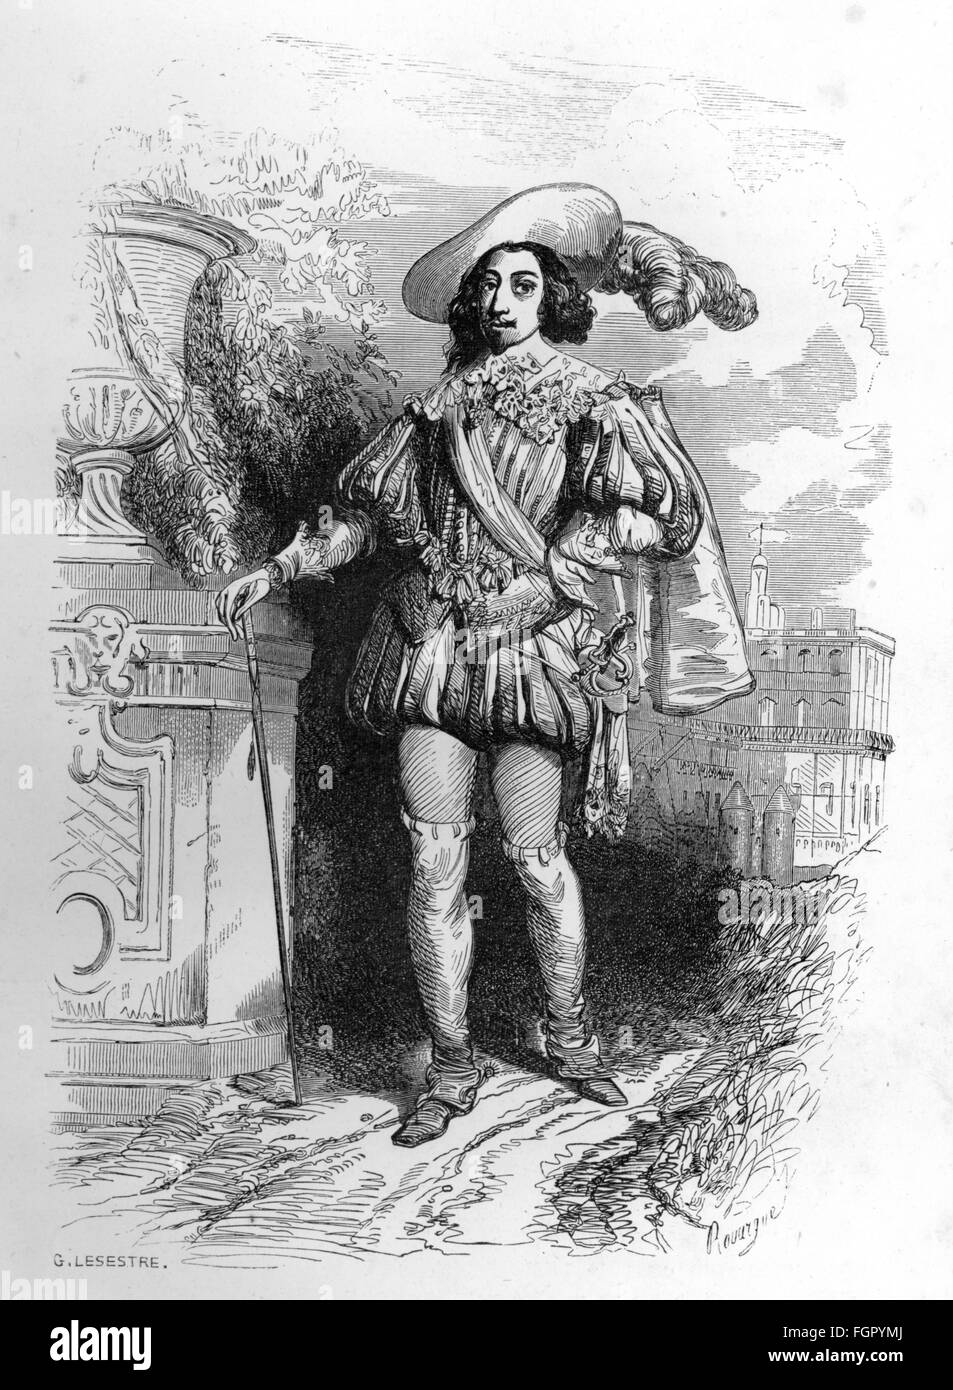 """lliterature, """"The Three Musketeers"""" (Les Trois Mousquetaires), by Alexandre Dumas the Elder, 6th chapter, king Louis XIII, wood engraving by G.Lesestre, Dufour et Moulat, Paris, 1851, Additional-Rights-Clearences-Not Available Stock Photo"""